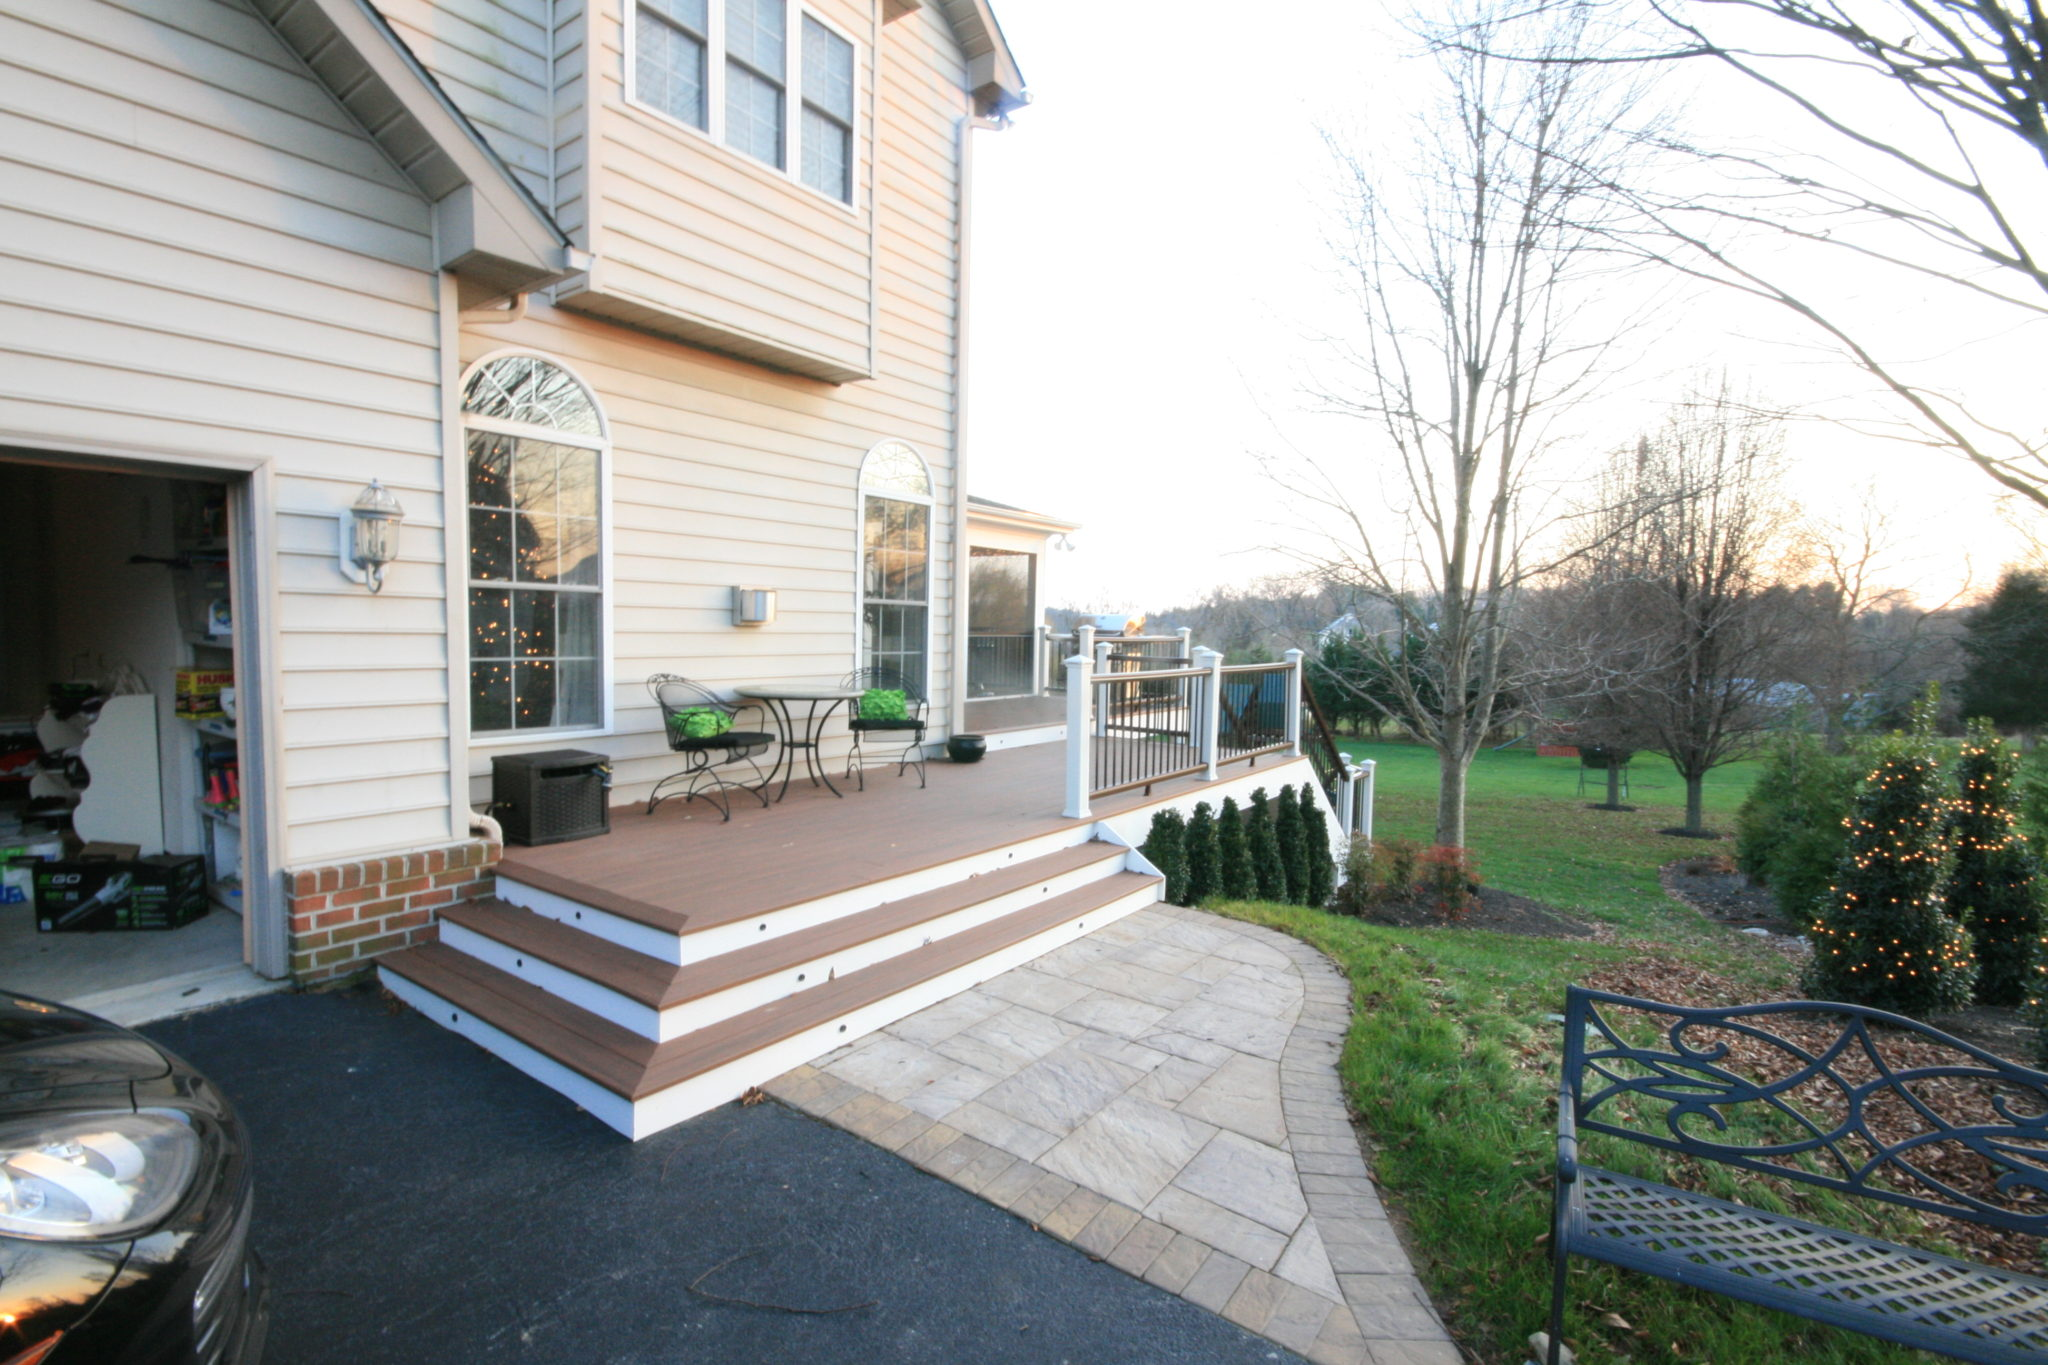 Maryland Screen Porch And Deck Contractor Builds Screen